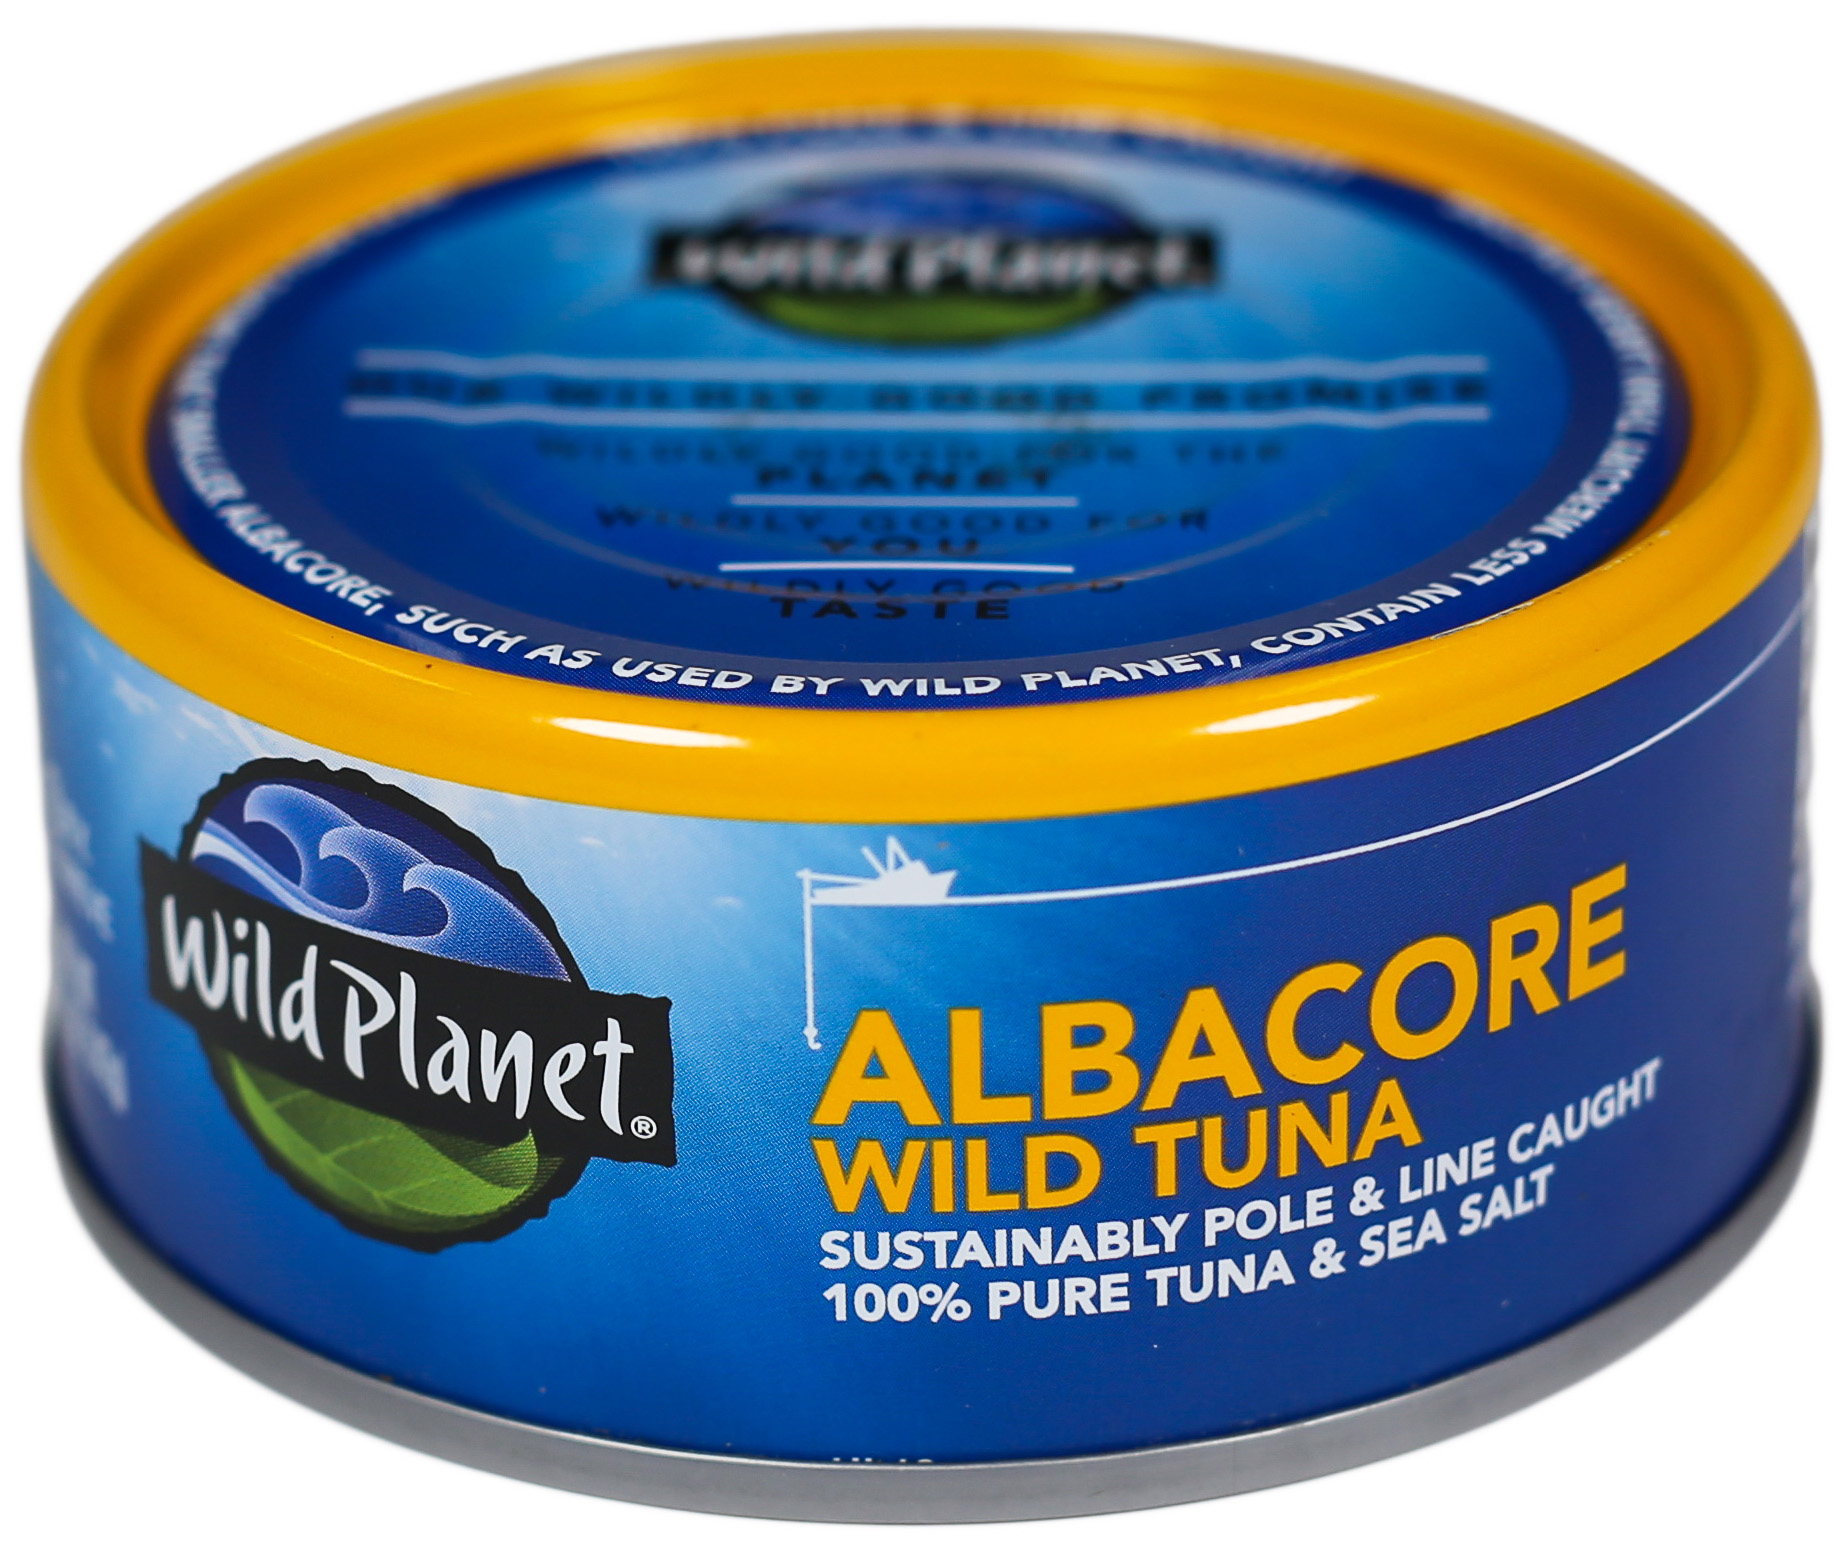 Wild Planet tuna. This might be even worse than lark's vomit.